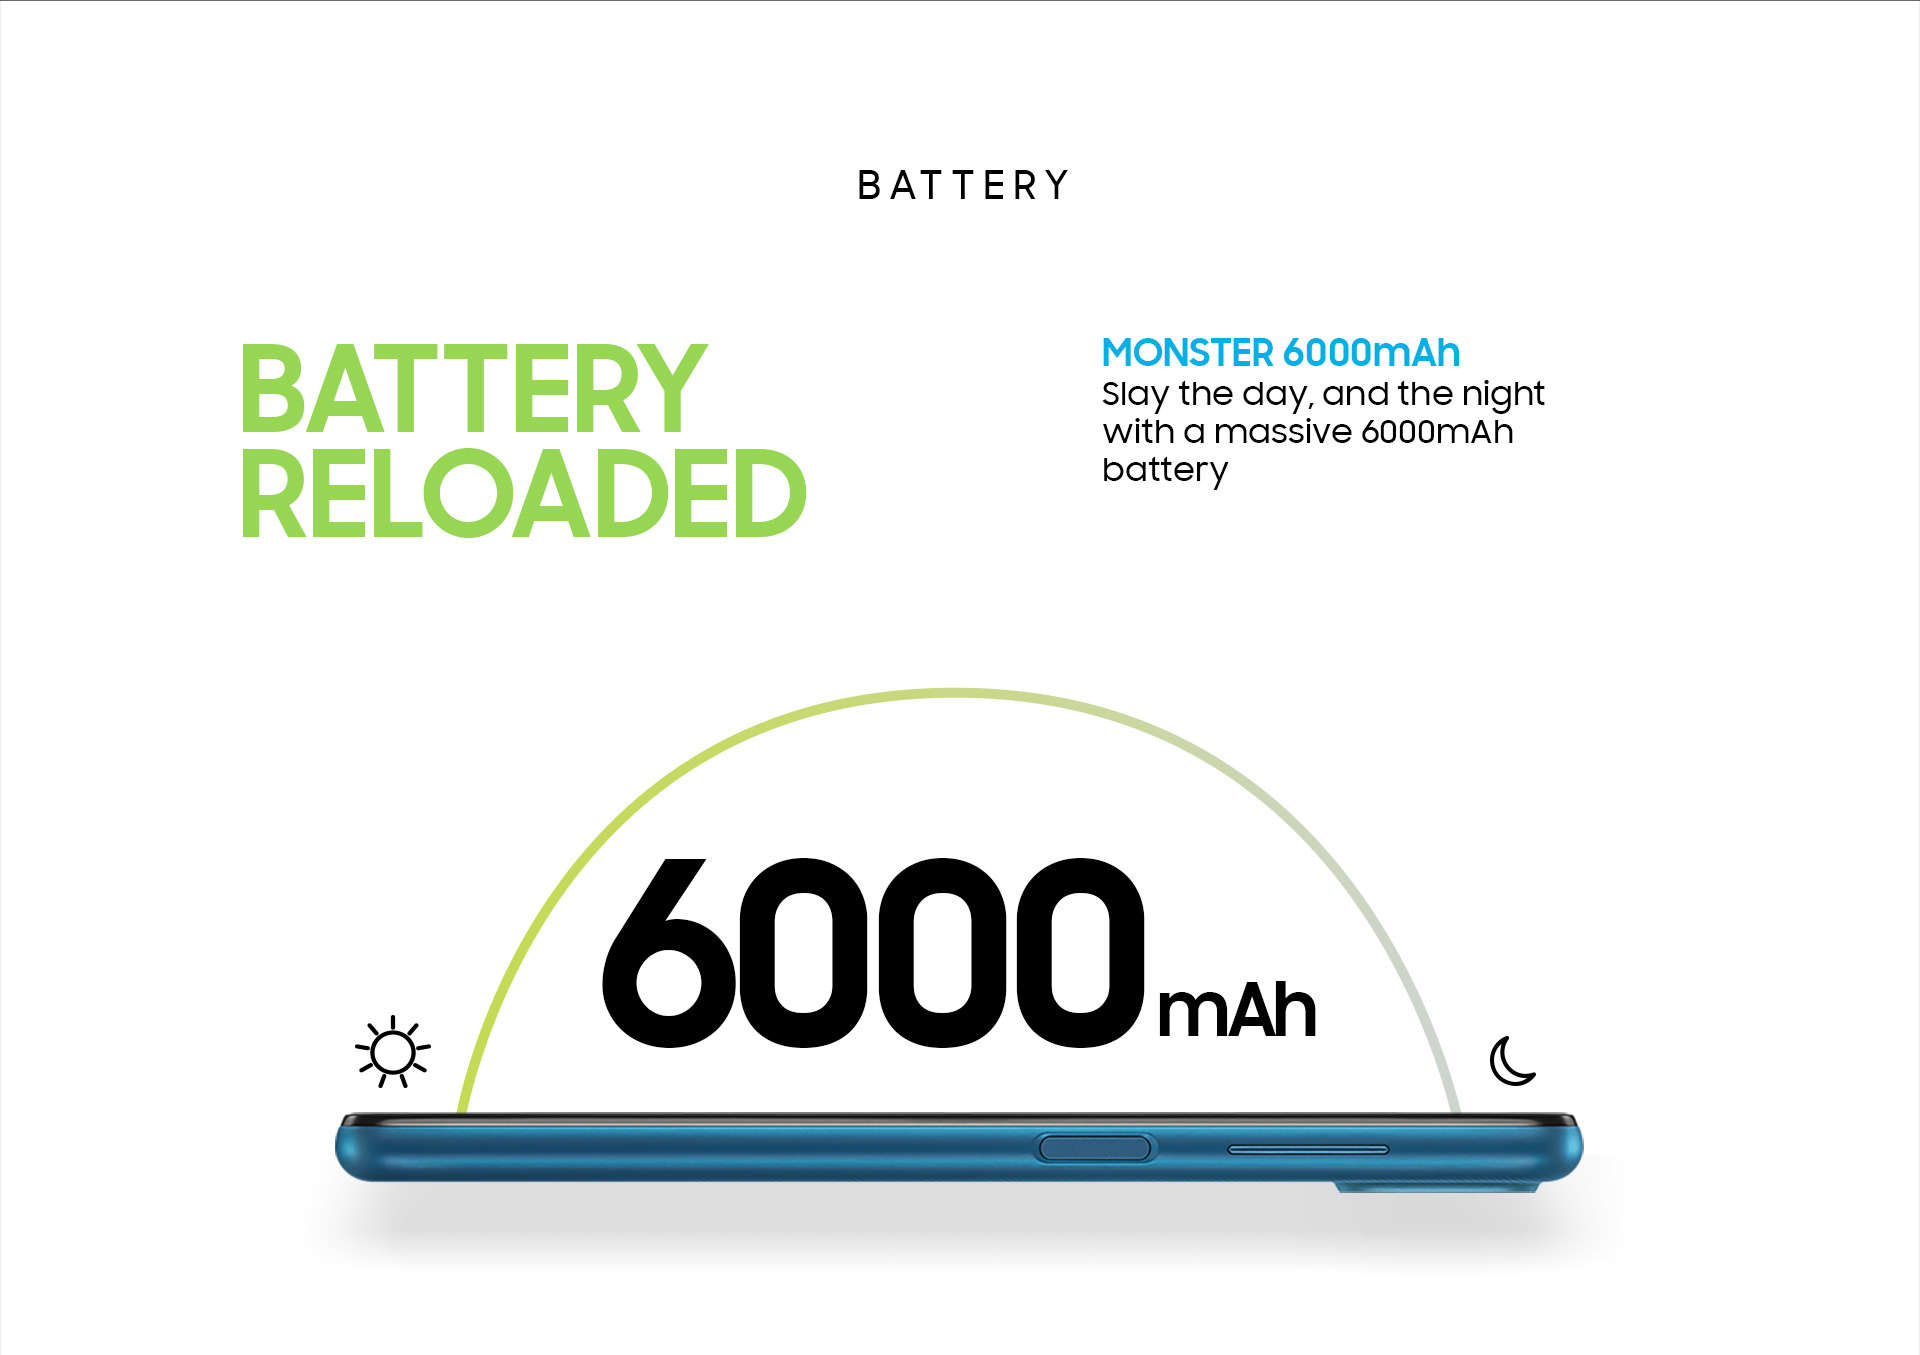 Battery reloaded